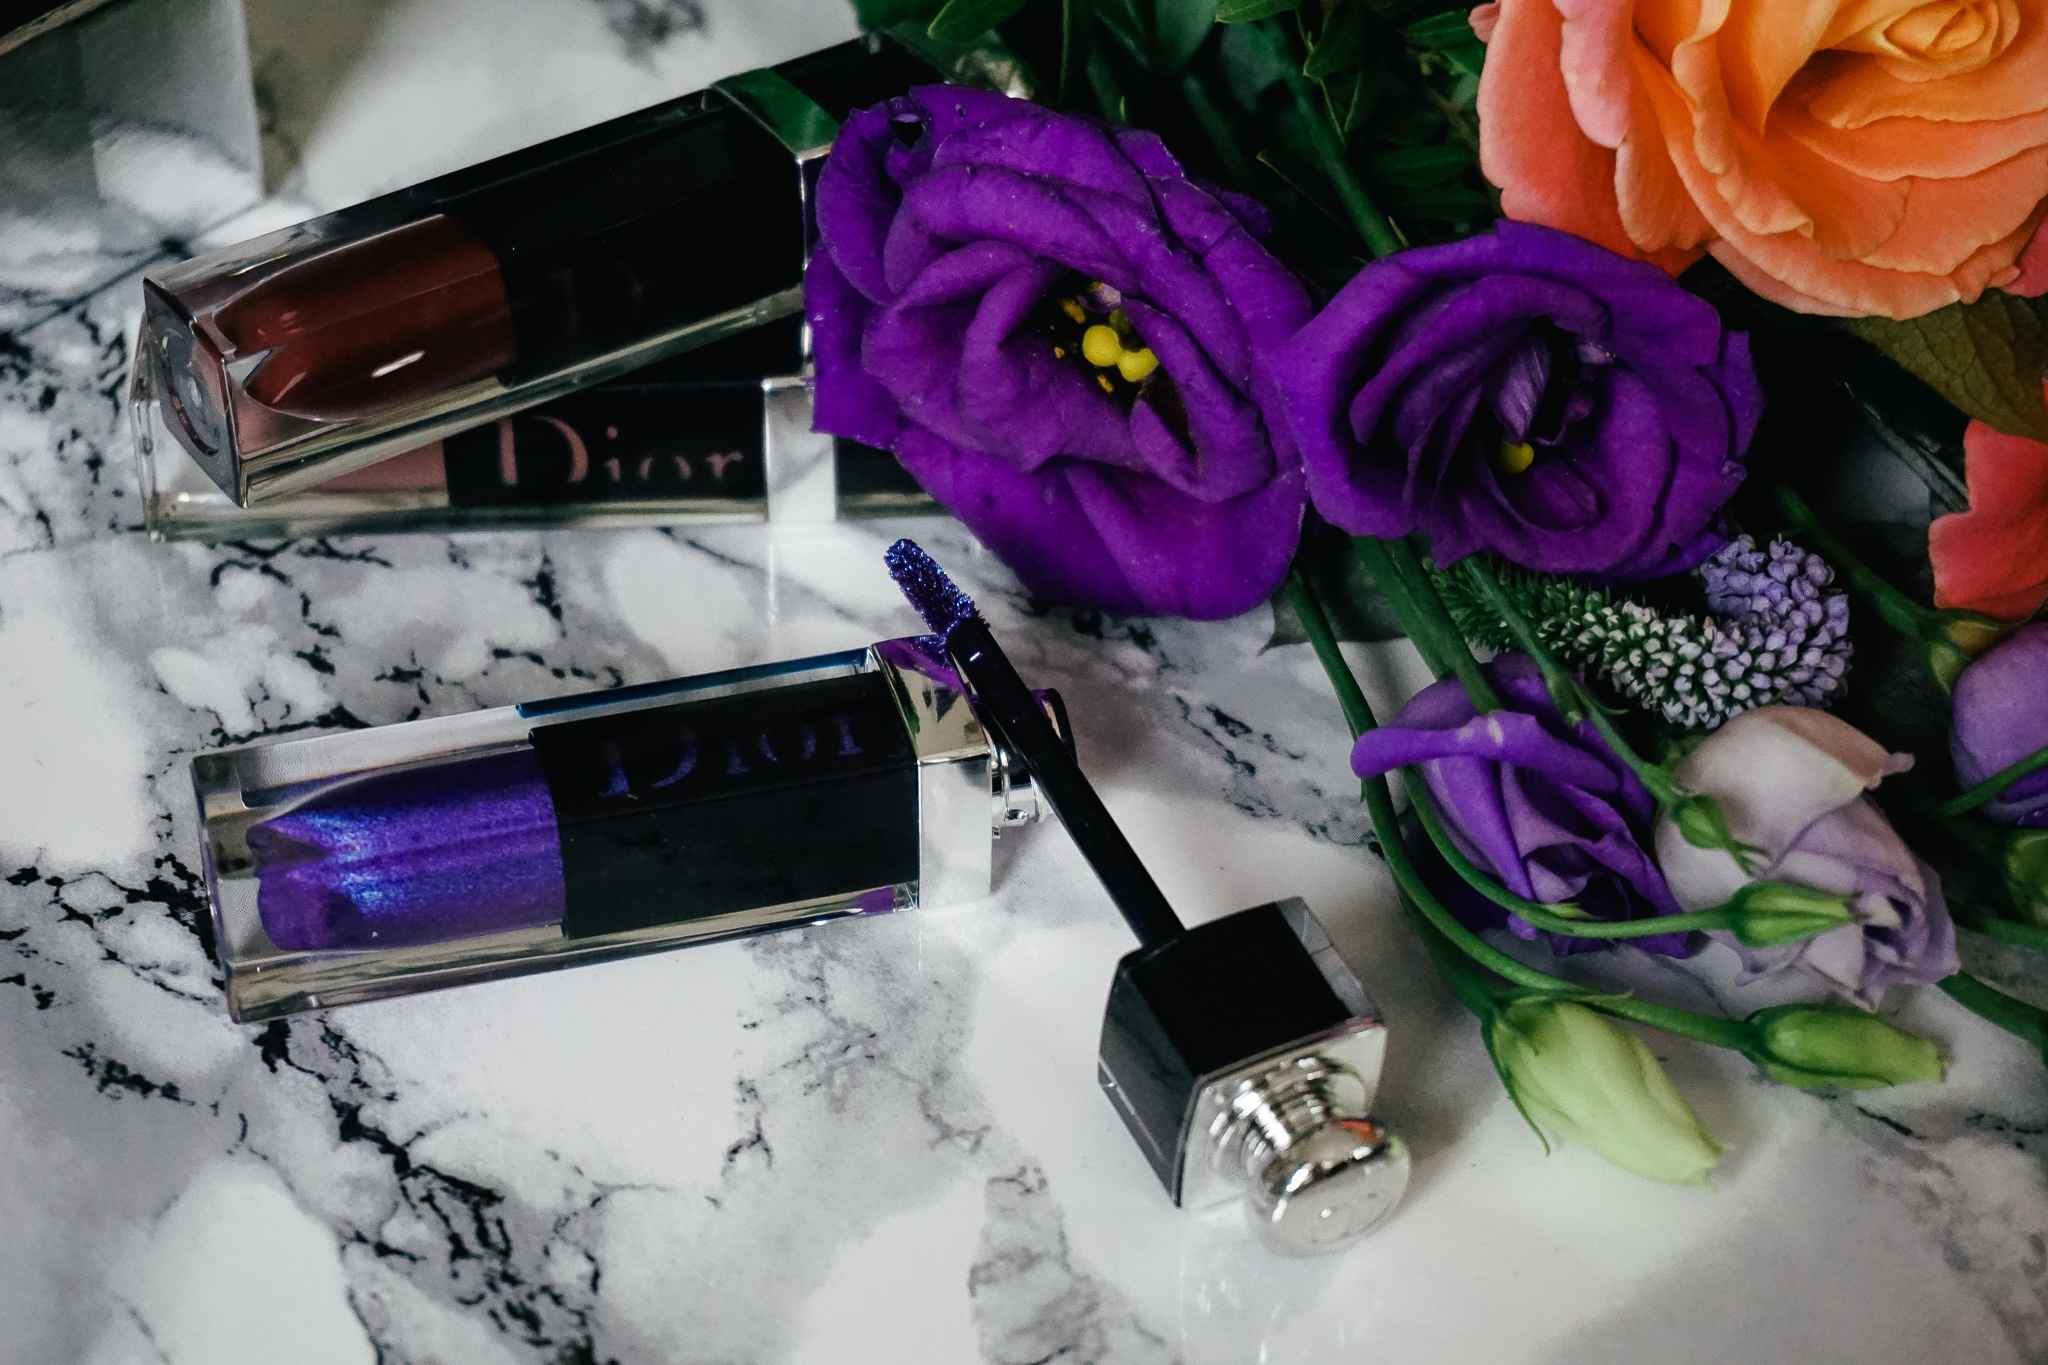 Review Dior Addict Lacquer Plump